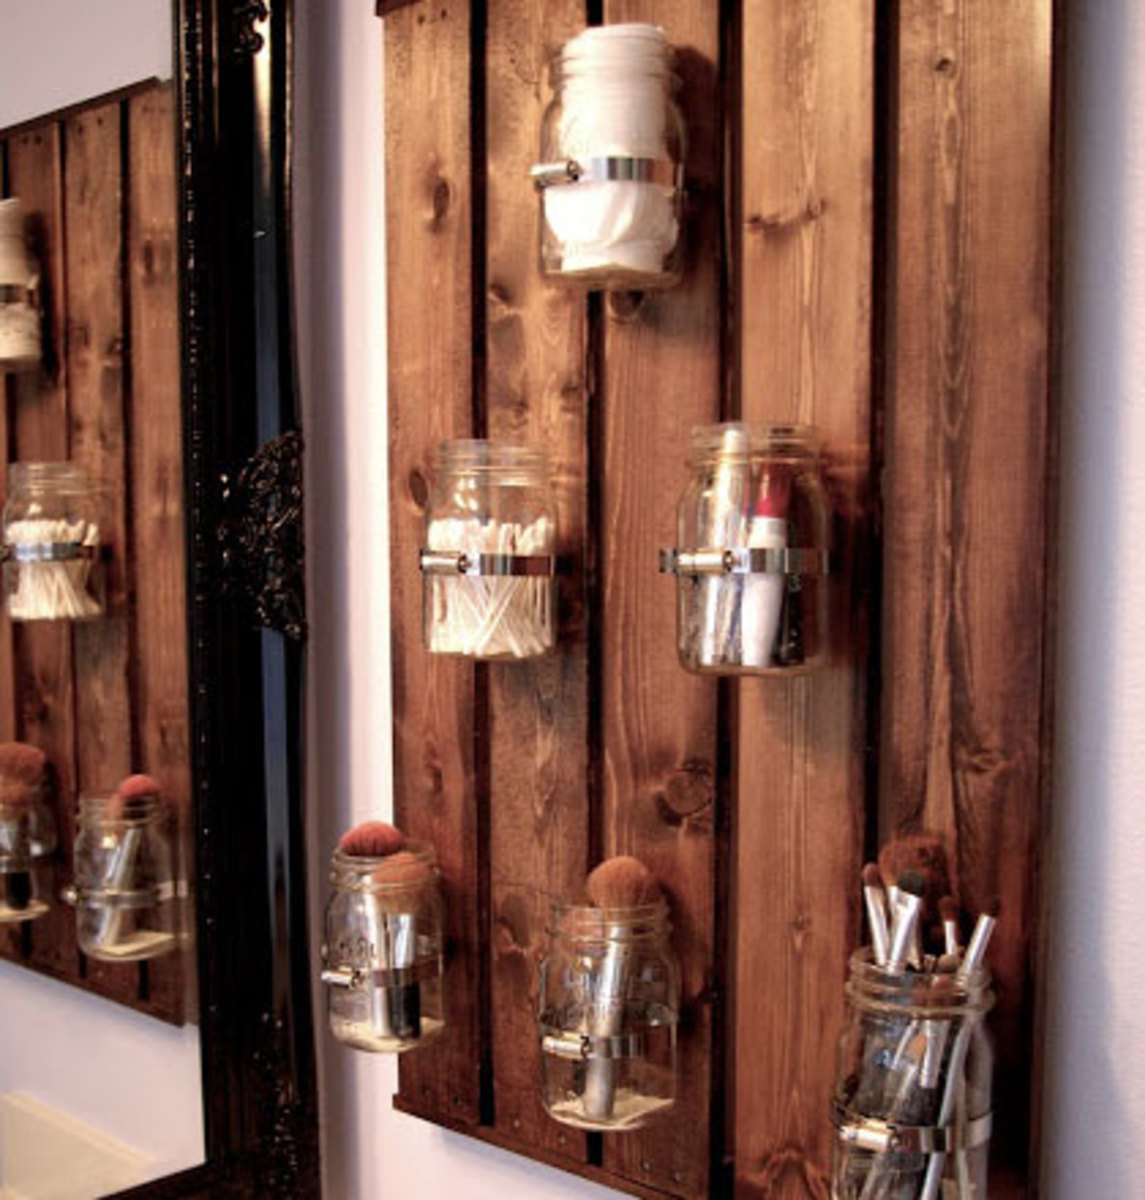 Mason Jar Bathroom Storage | Easy Organization Ideas for the Home